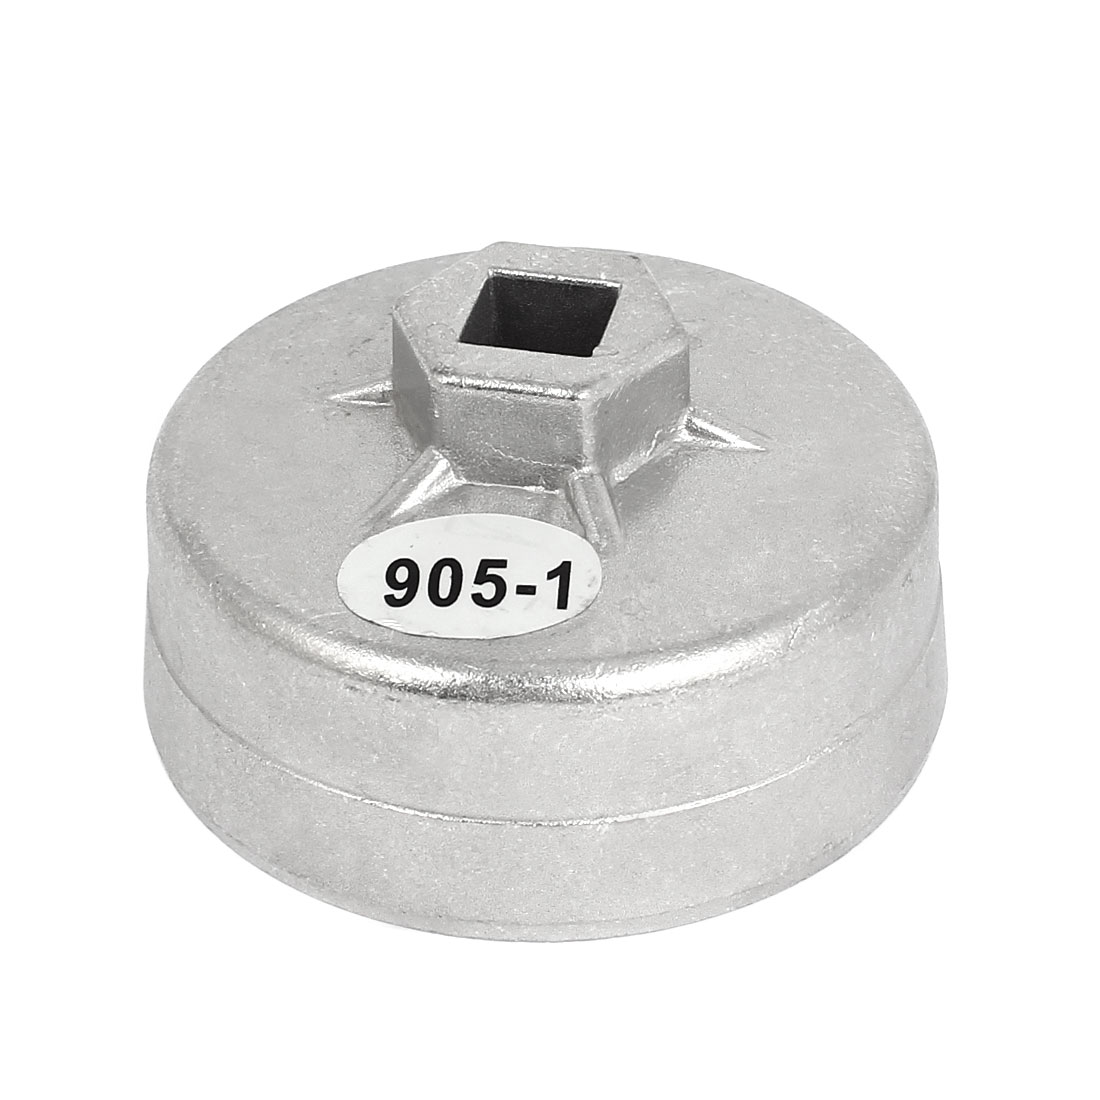 905-1 74mm Dia 14 Flutes Oil Filter Socket Cap Wrench Tool for Car